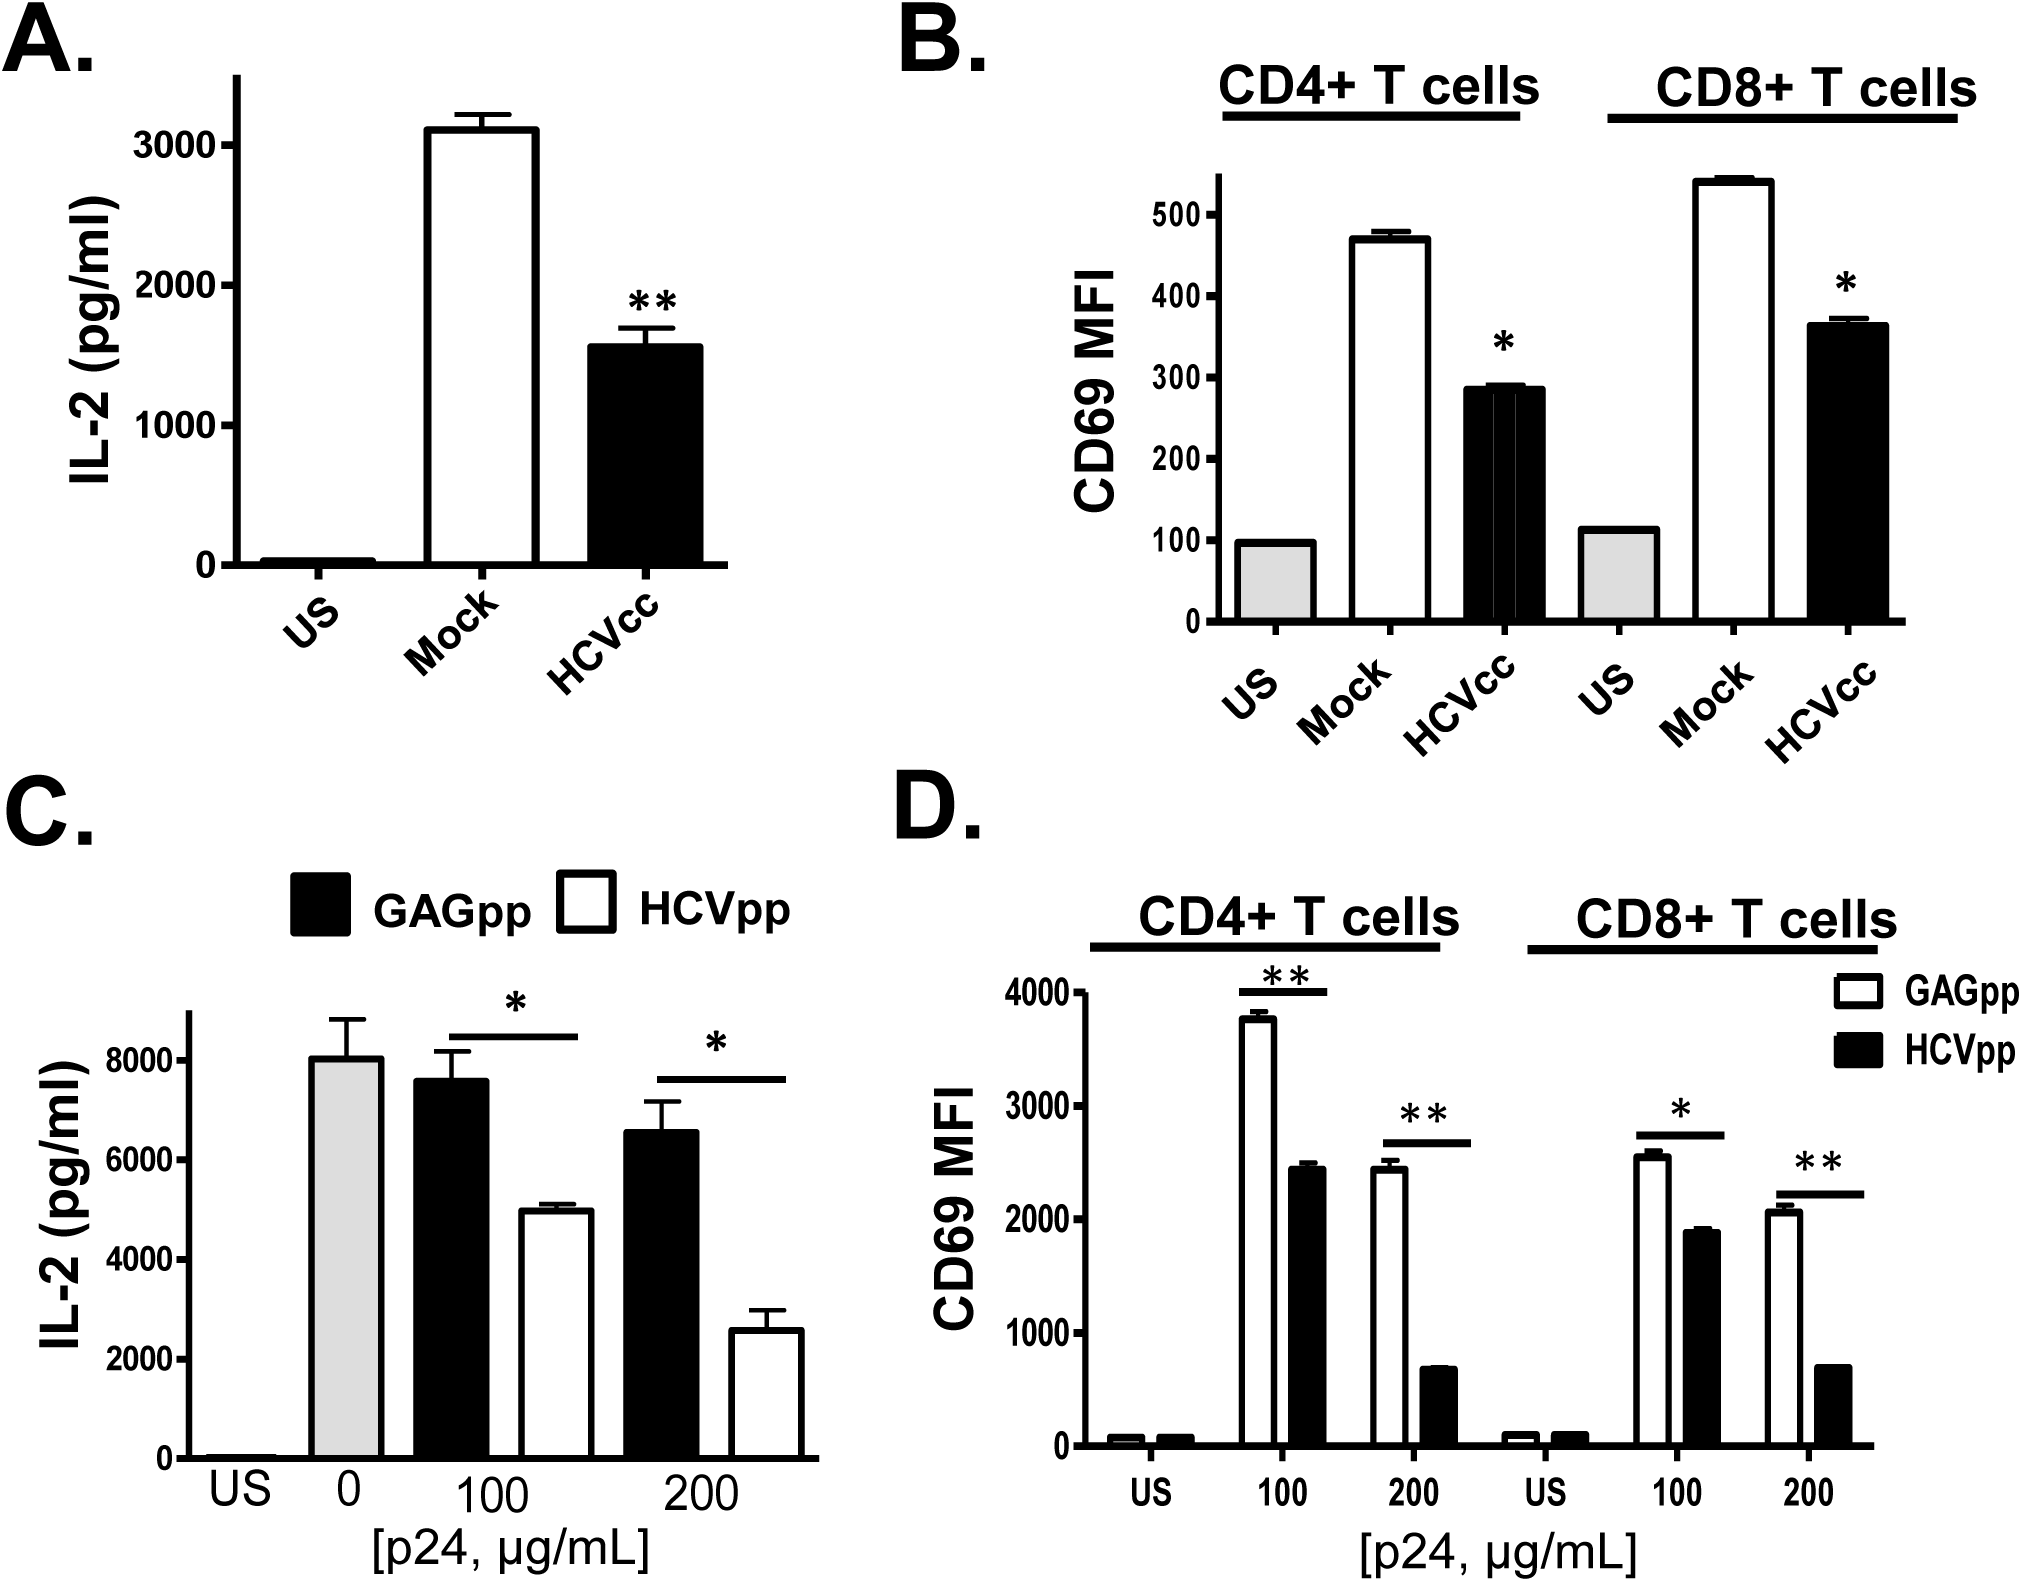 HCV cell culture derived particles (HCVcc) and HCV envelope pseudotyped retrovirus particles (HCVpp) inhibit T cell receptor (TCR) signaling in primary human T cells.